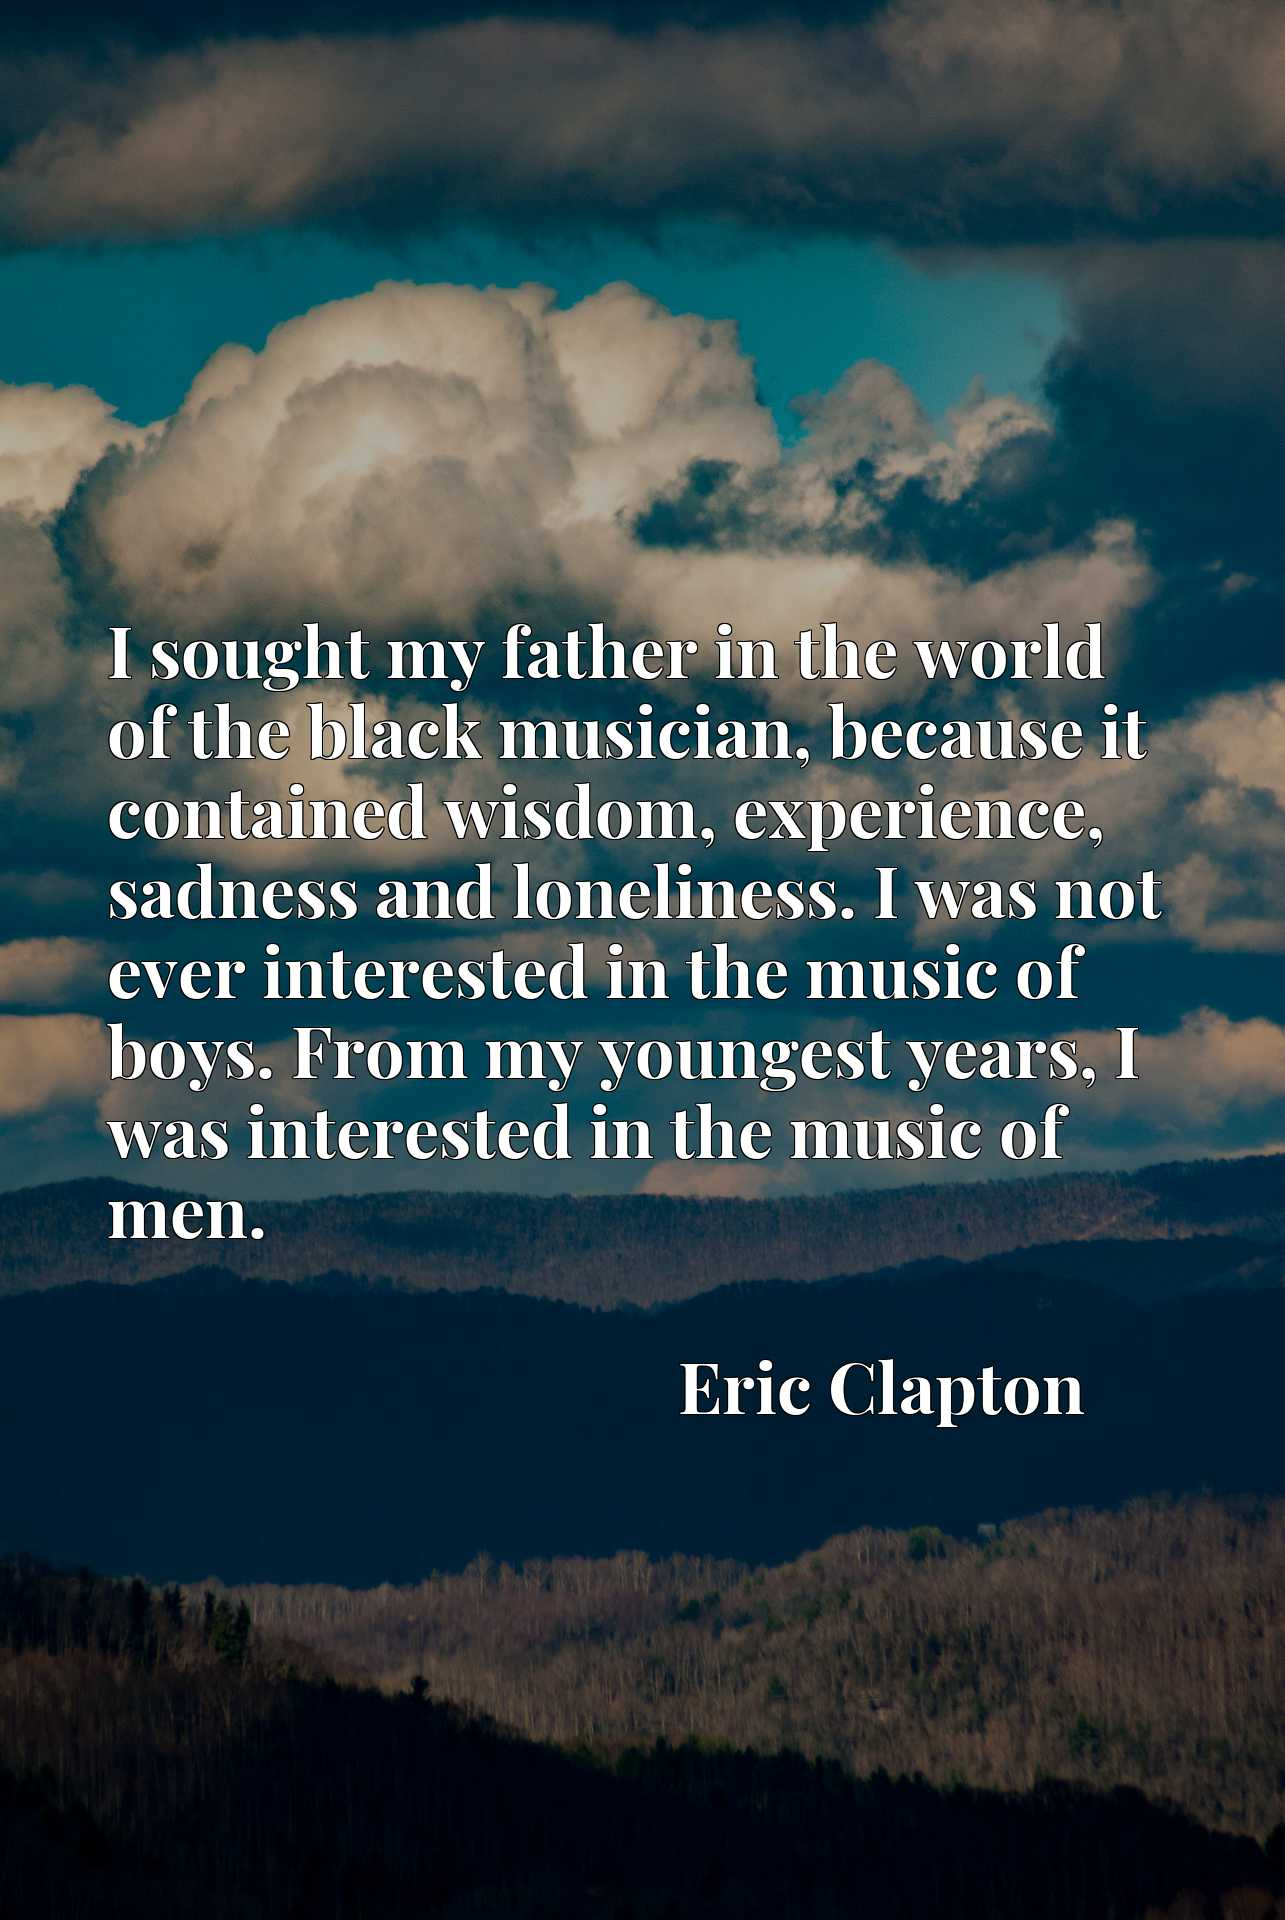 I sought my father in the world of the black musician, because it contained wisdom, experience, sadness and loneliness. I was not ever interested in the music of boys. From my youngest years, I was interested in the music of men.